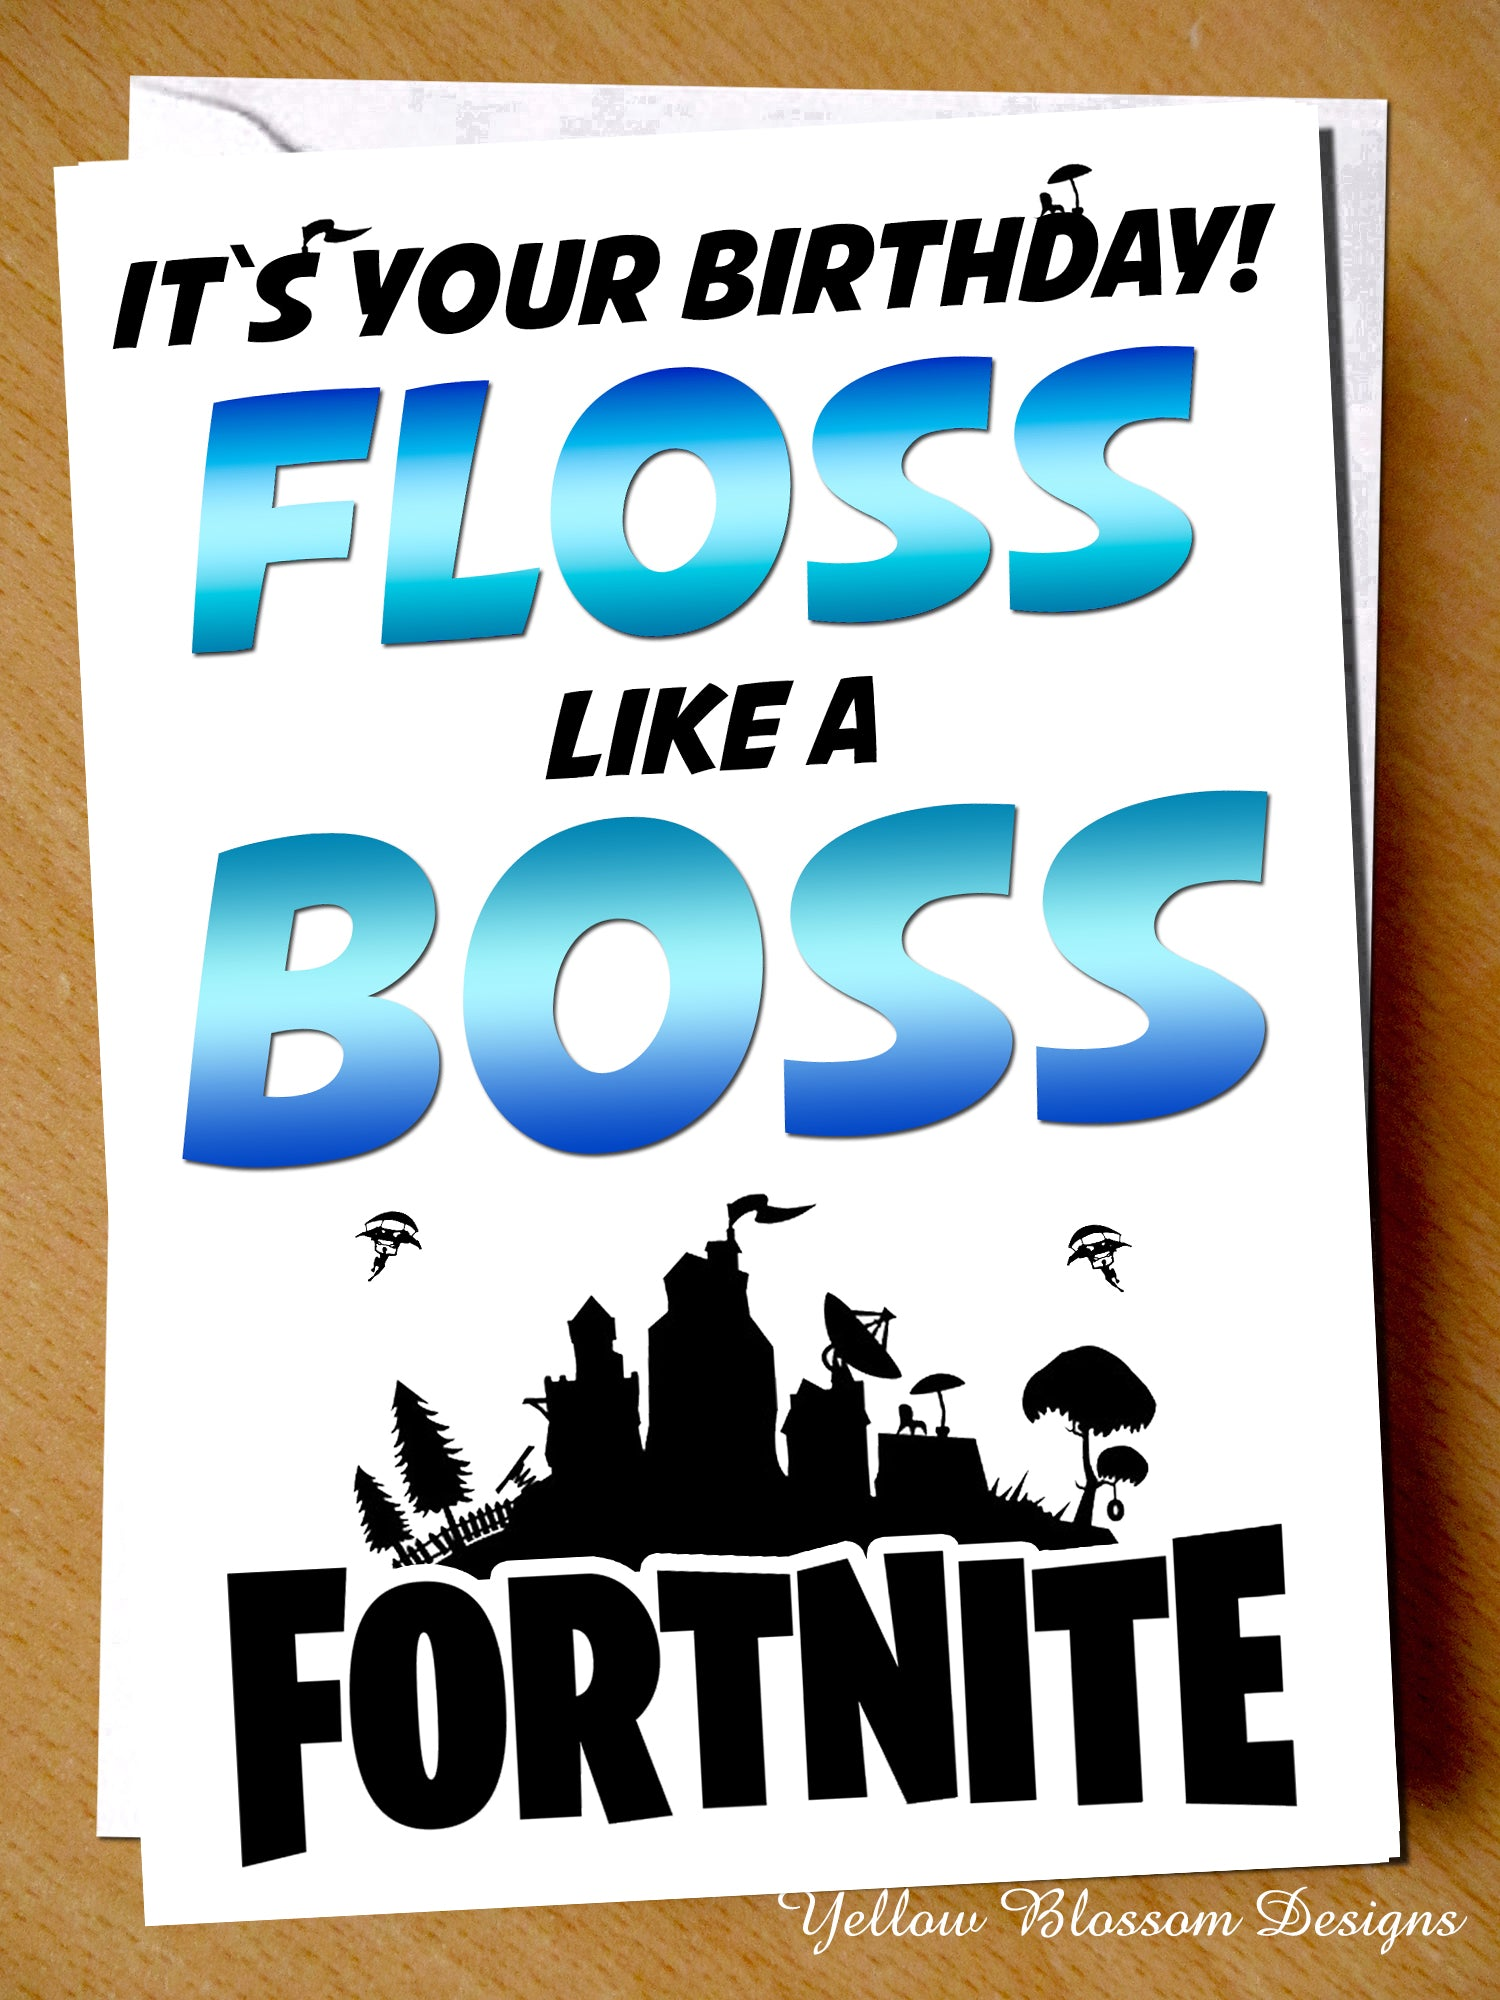 picture regarding Fortnite Birthday Card Printable called Floss Which include A Manager Fornite Birthday Card ~ Gaming ~ Teen